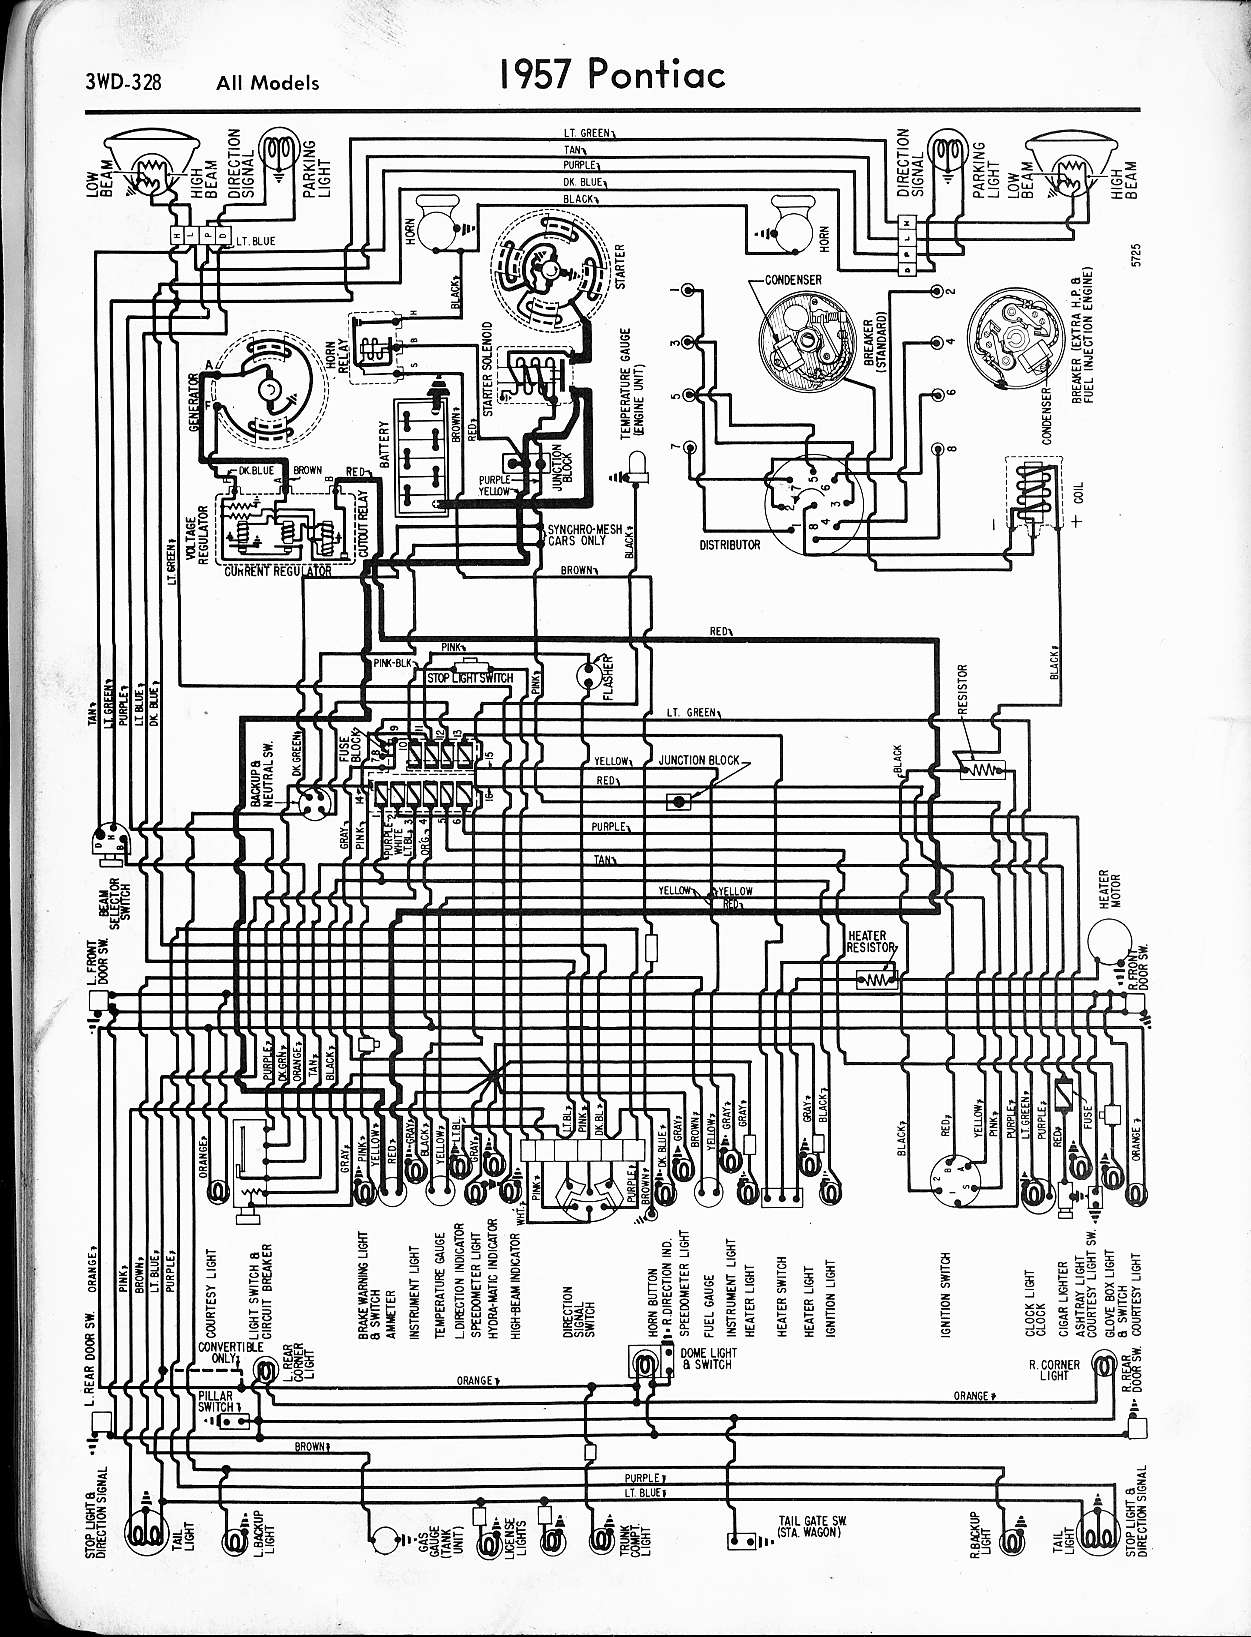 1970 Pontiac Lemans Wiring Diagram Simple Options 1968 Mercury Cyclone Schematic Wallace Racing Diagrams Marauder